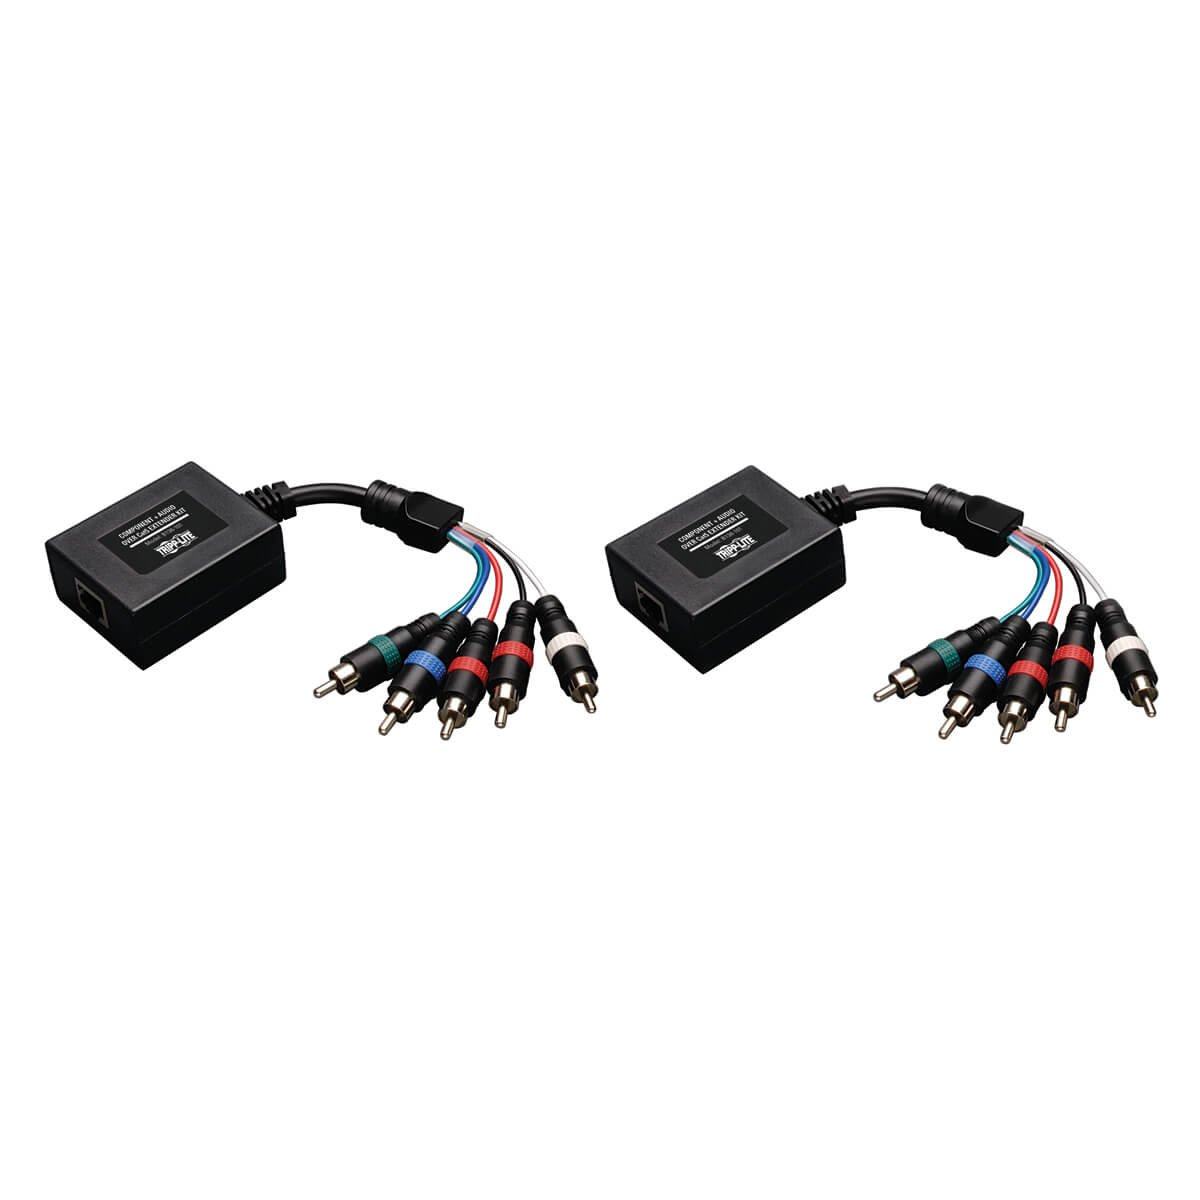 Tripp Lite Component Video With Stereo Audio Over Cat5 Cat 5 Wiring Diagram On Nti Cat6 Extender Transmitter And Receiver B136 101 Home Theater